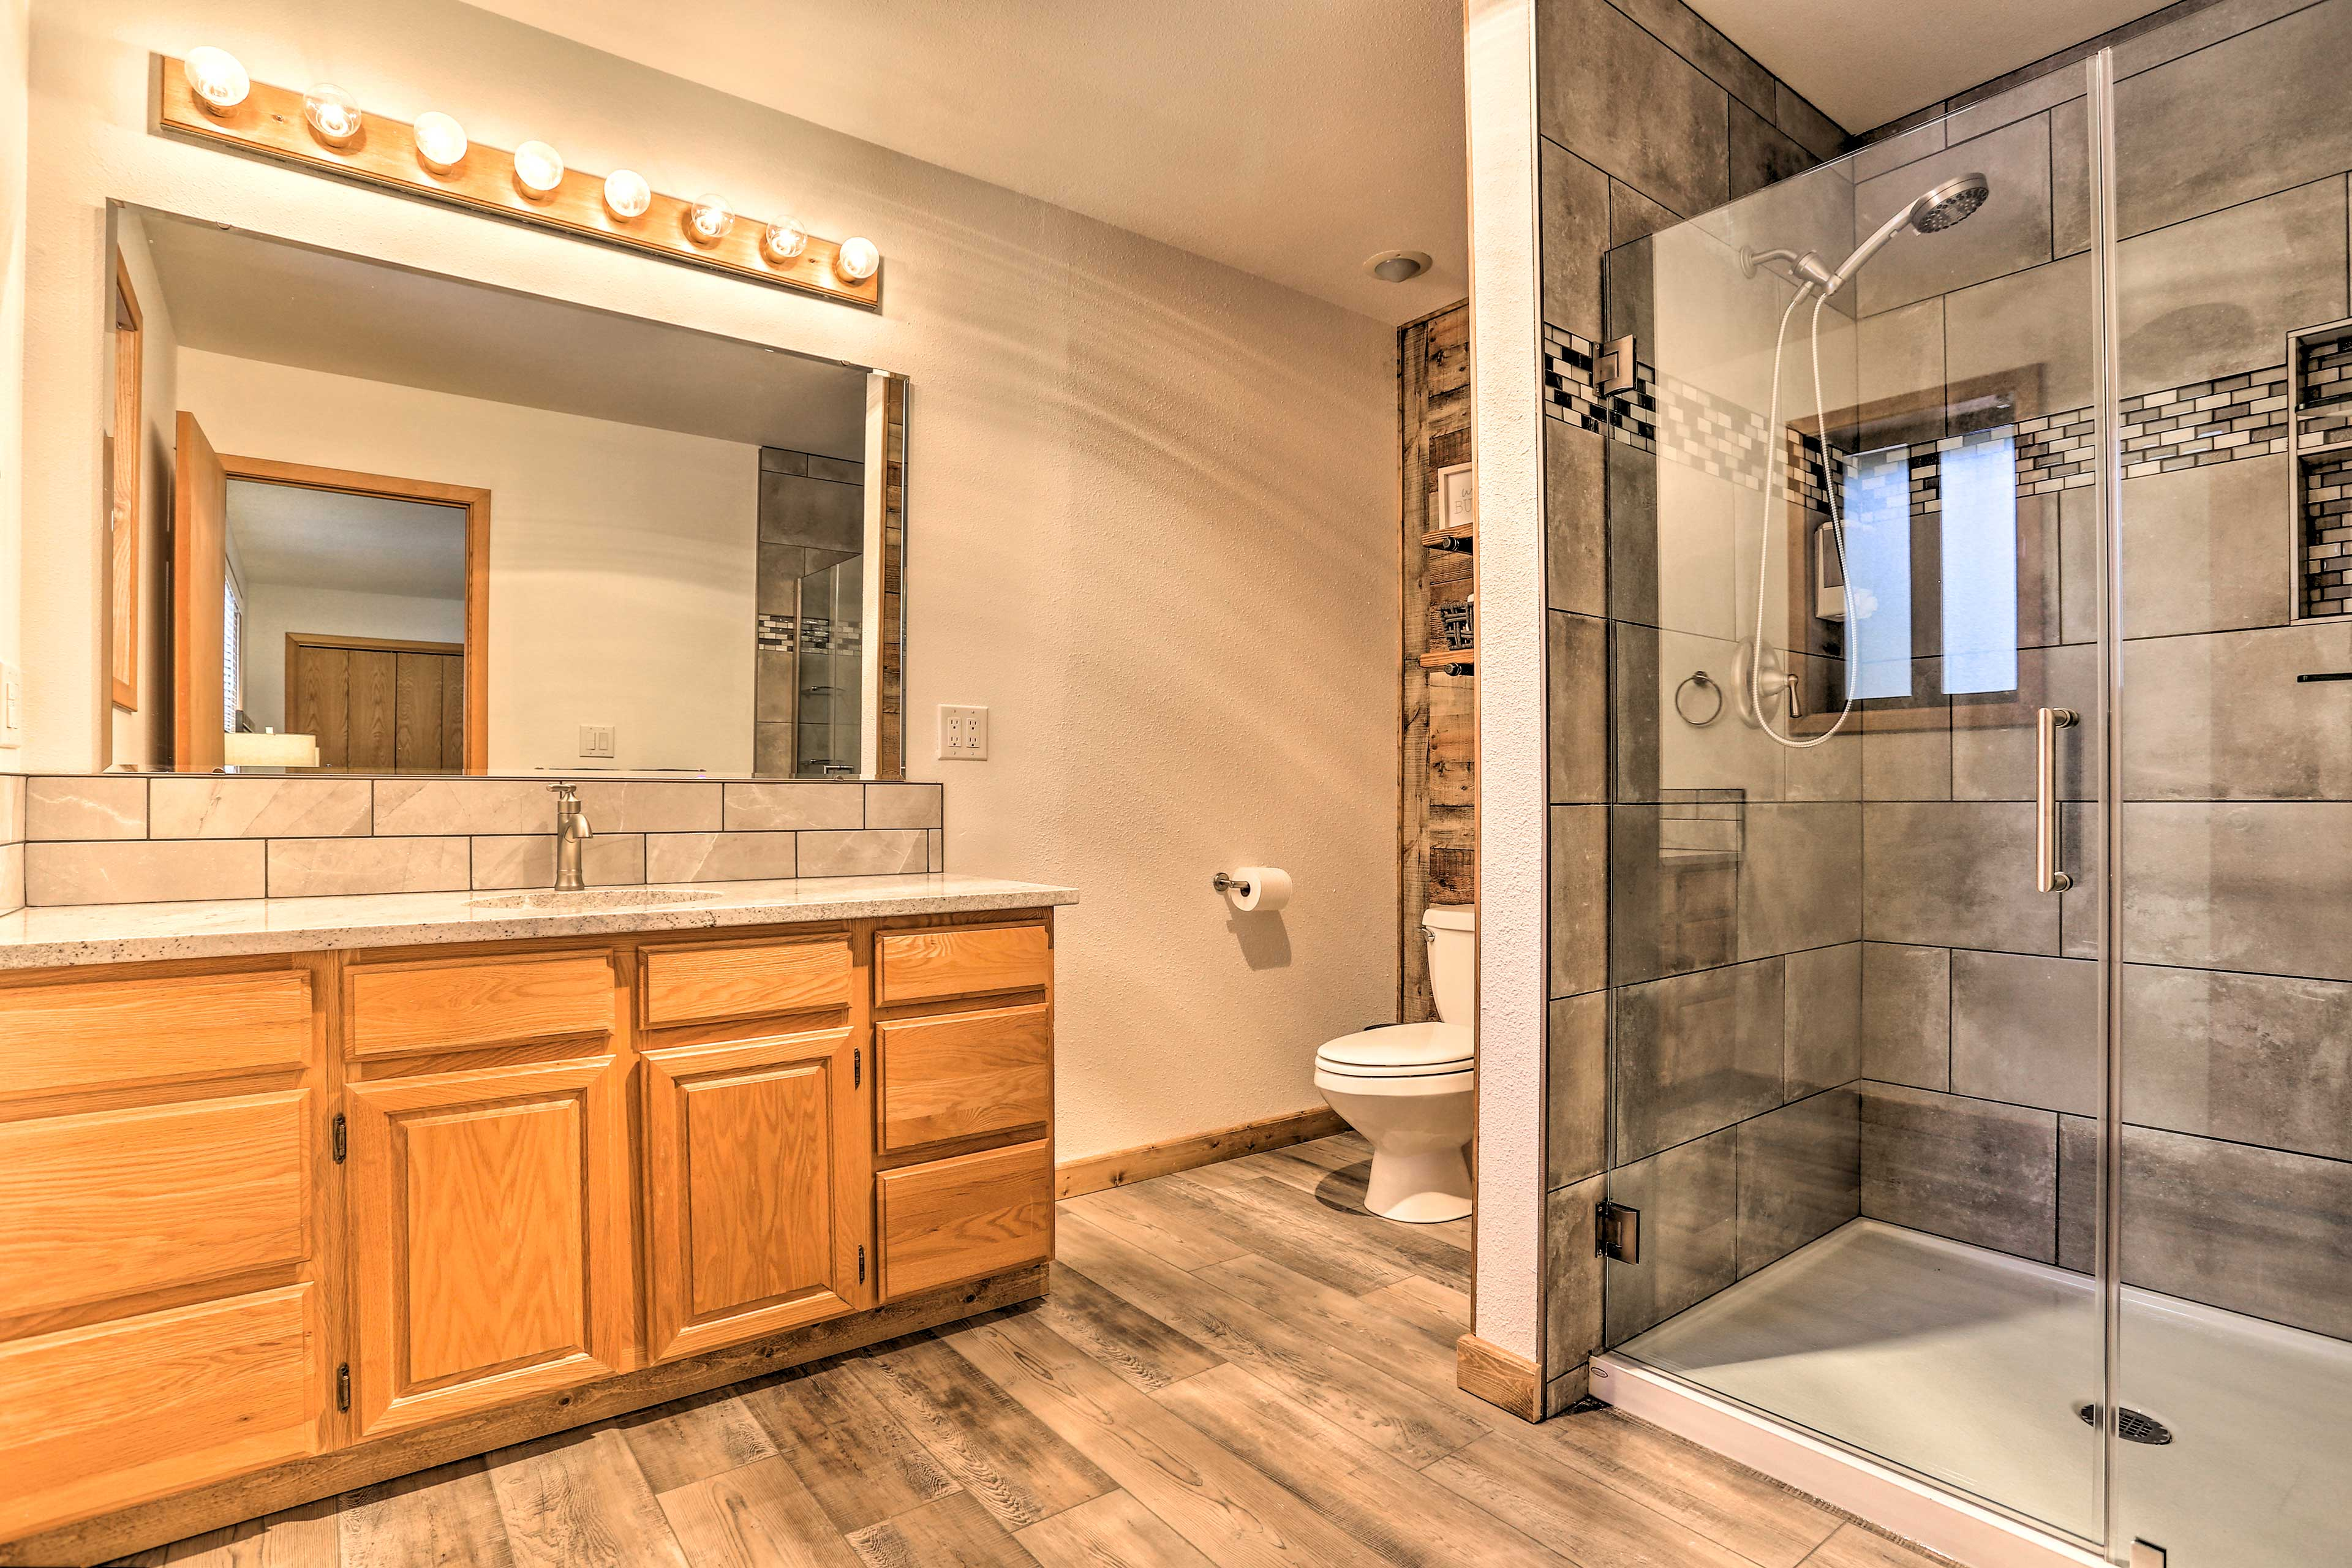 The master bathroom has a glass-frame shower with a detachable shower head.